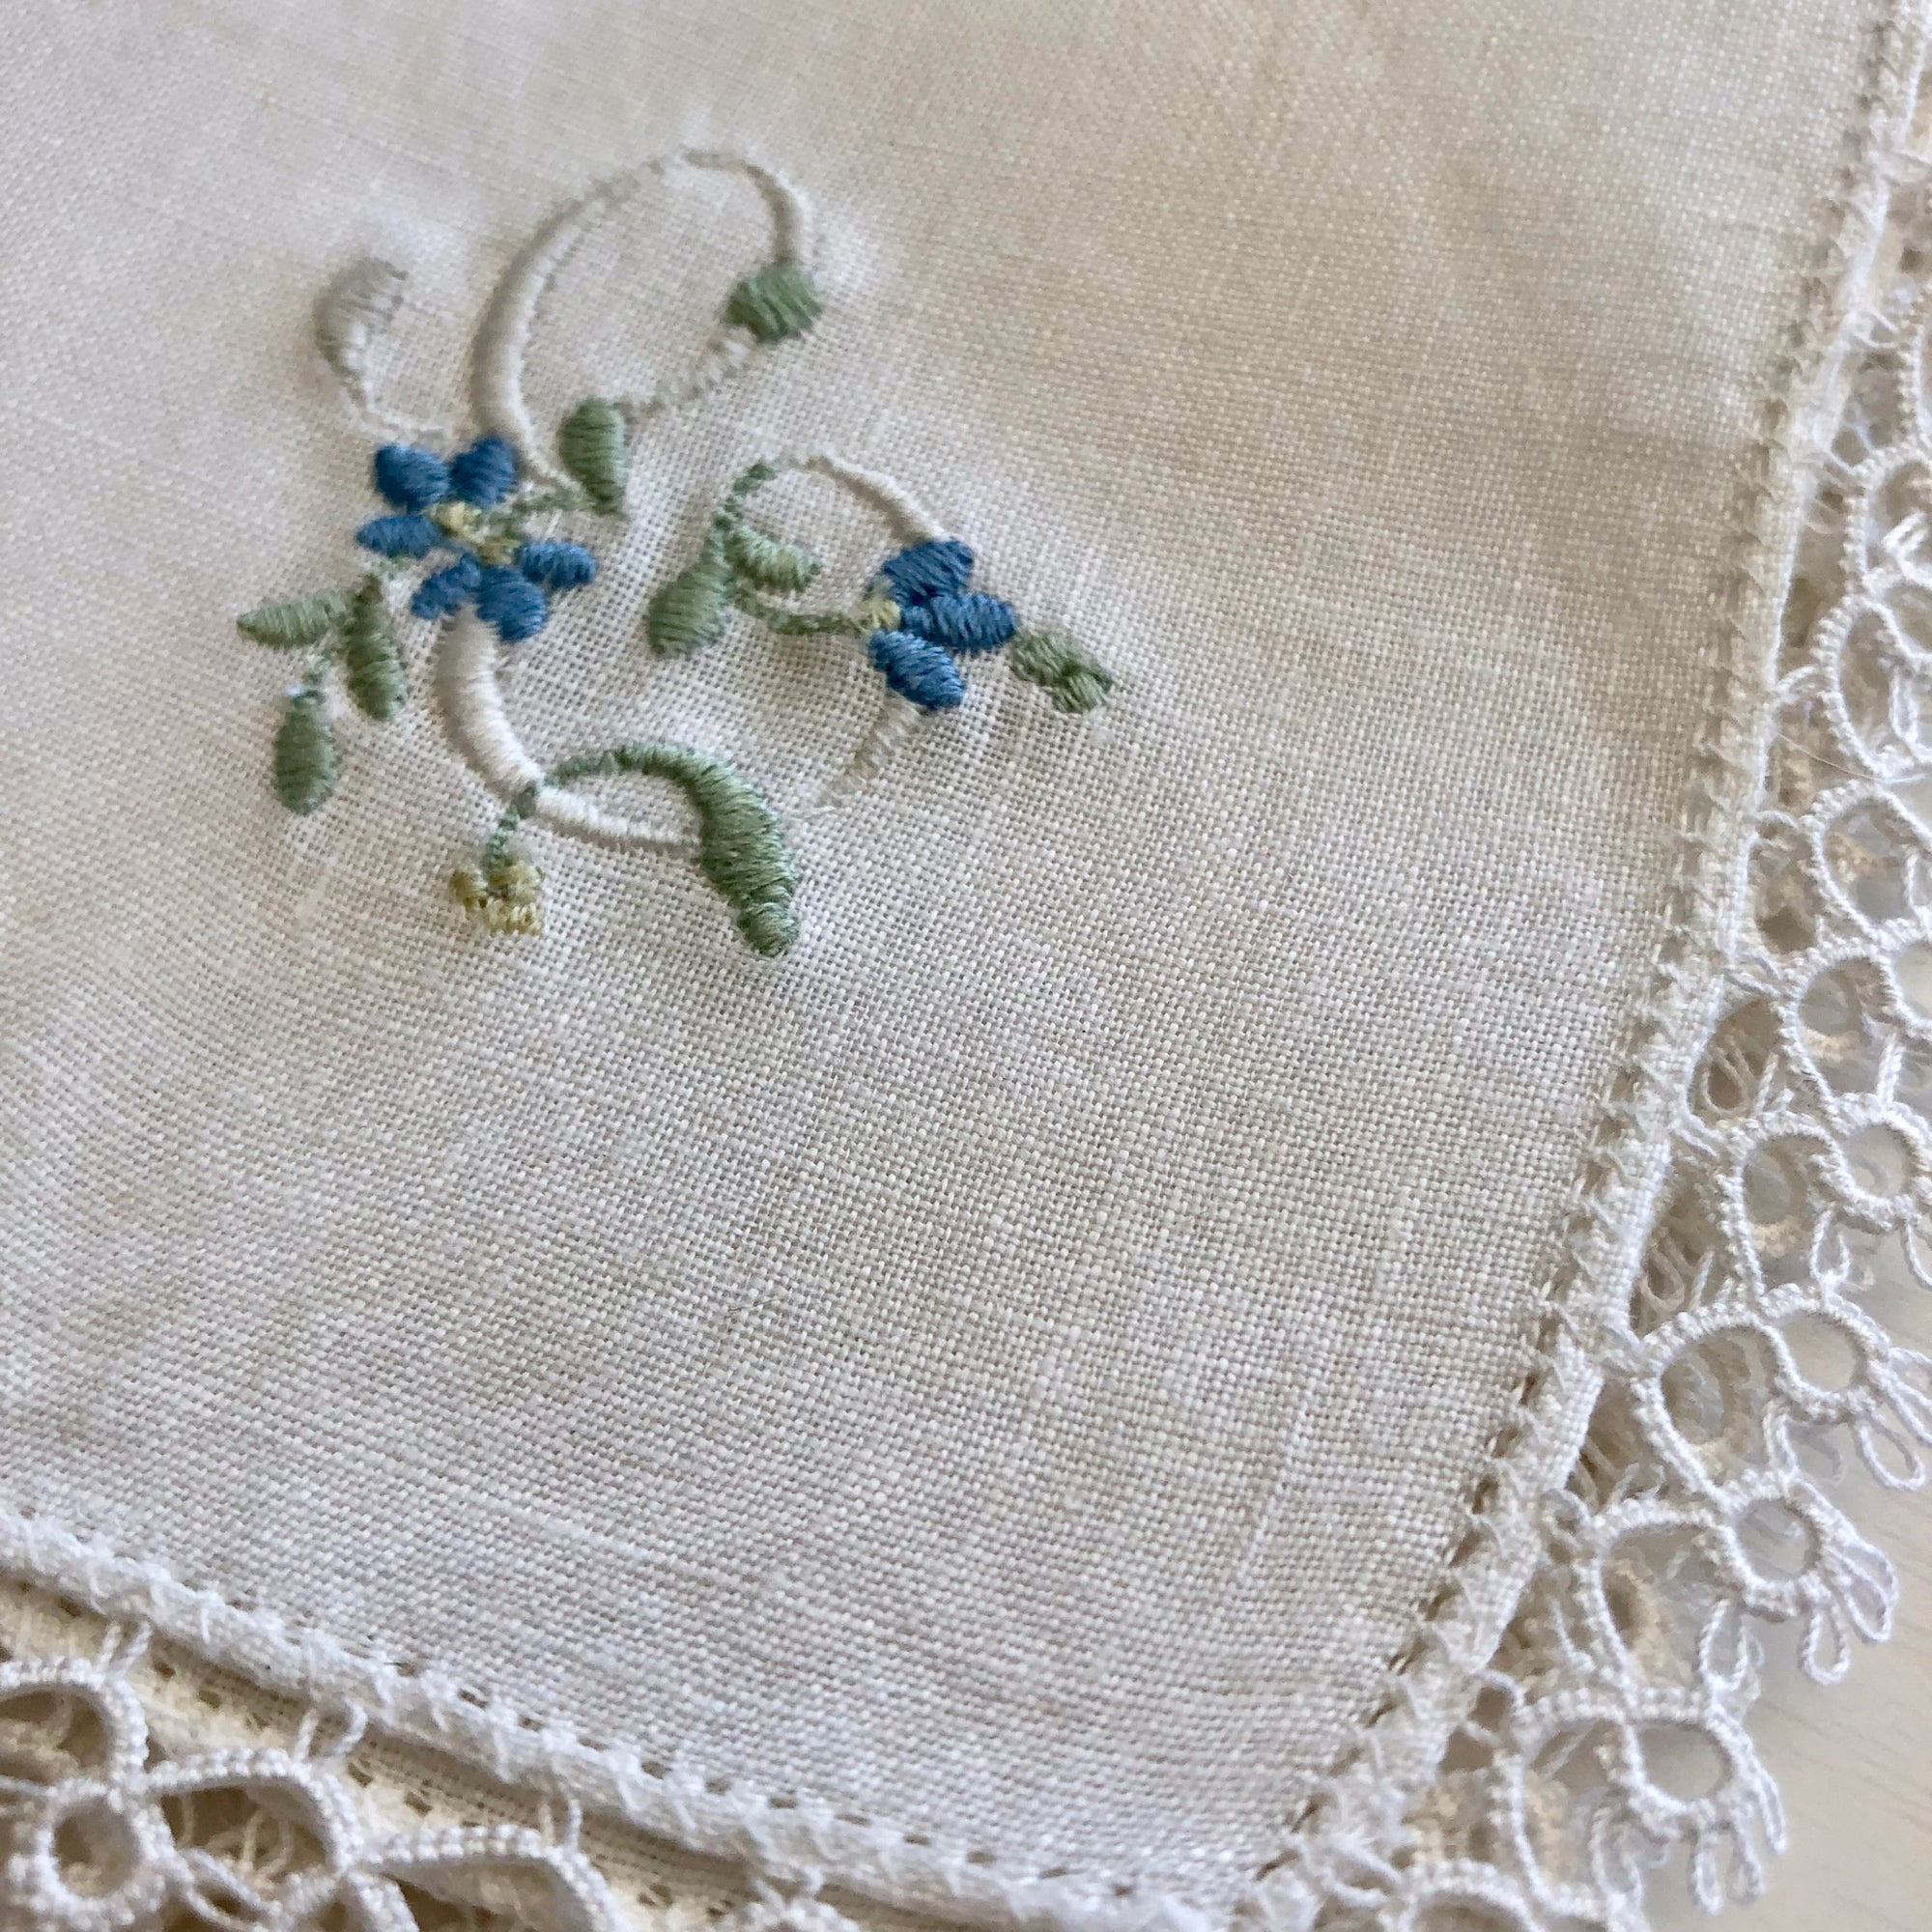 Learn to Machine Embroider - Starts 01/08 [6 Sessions]